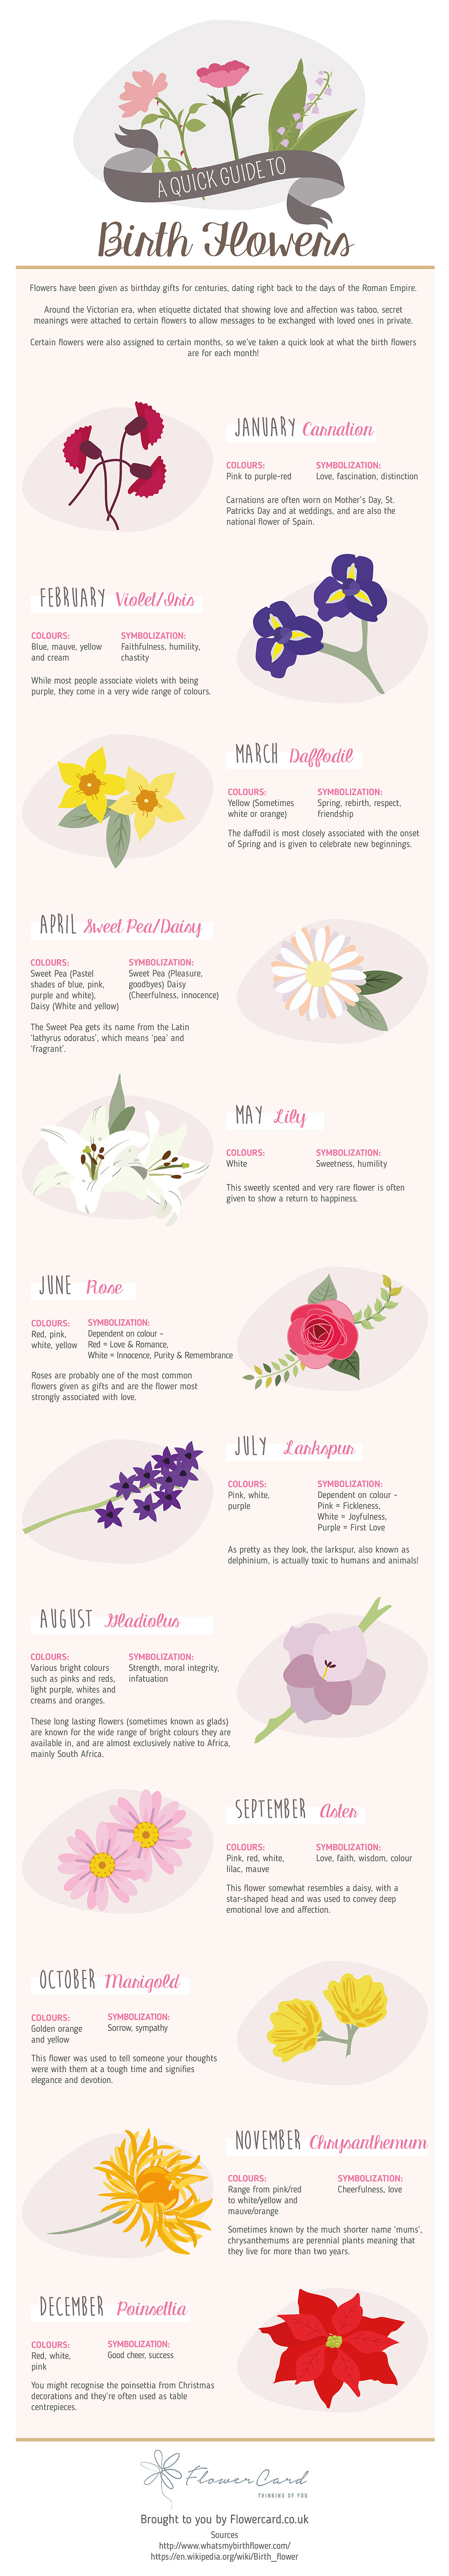 A quick guide to birth flowers infographic flowercard thinking flowercard blog izmirmasajfo